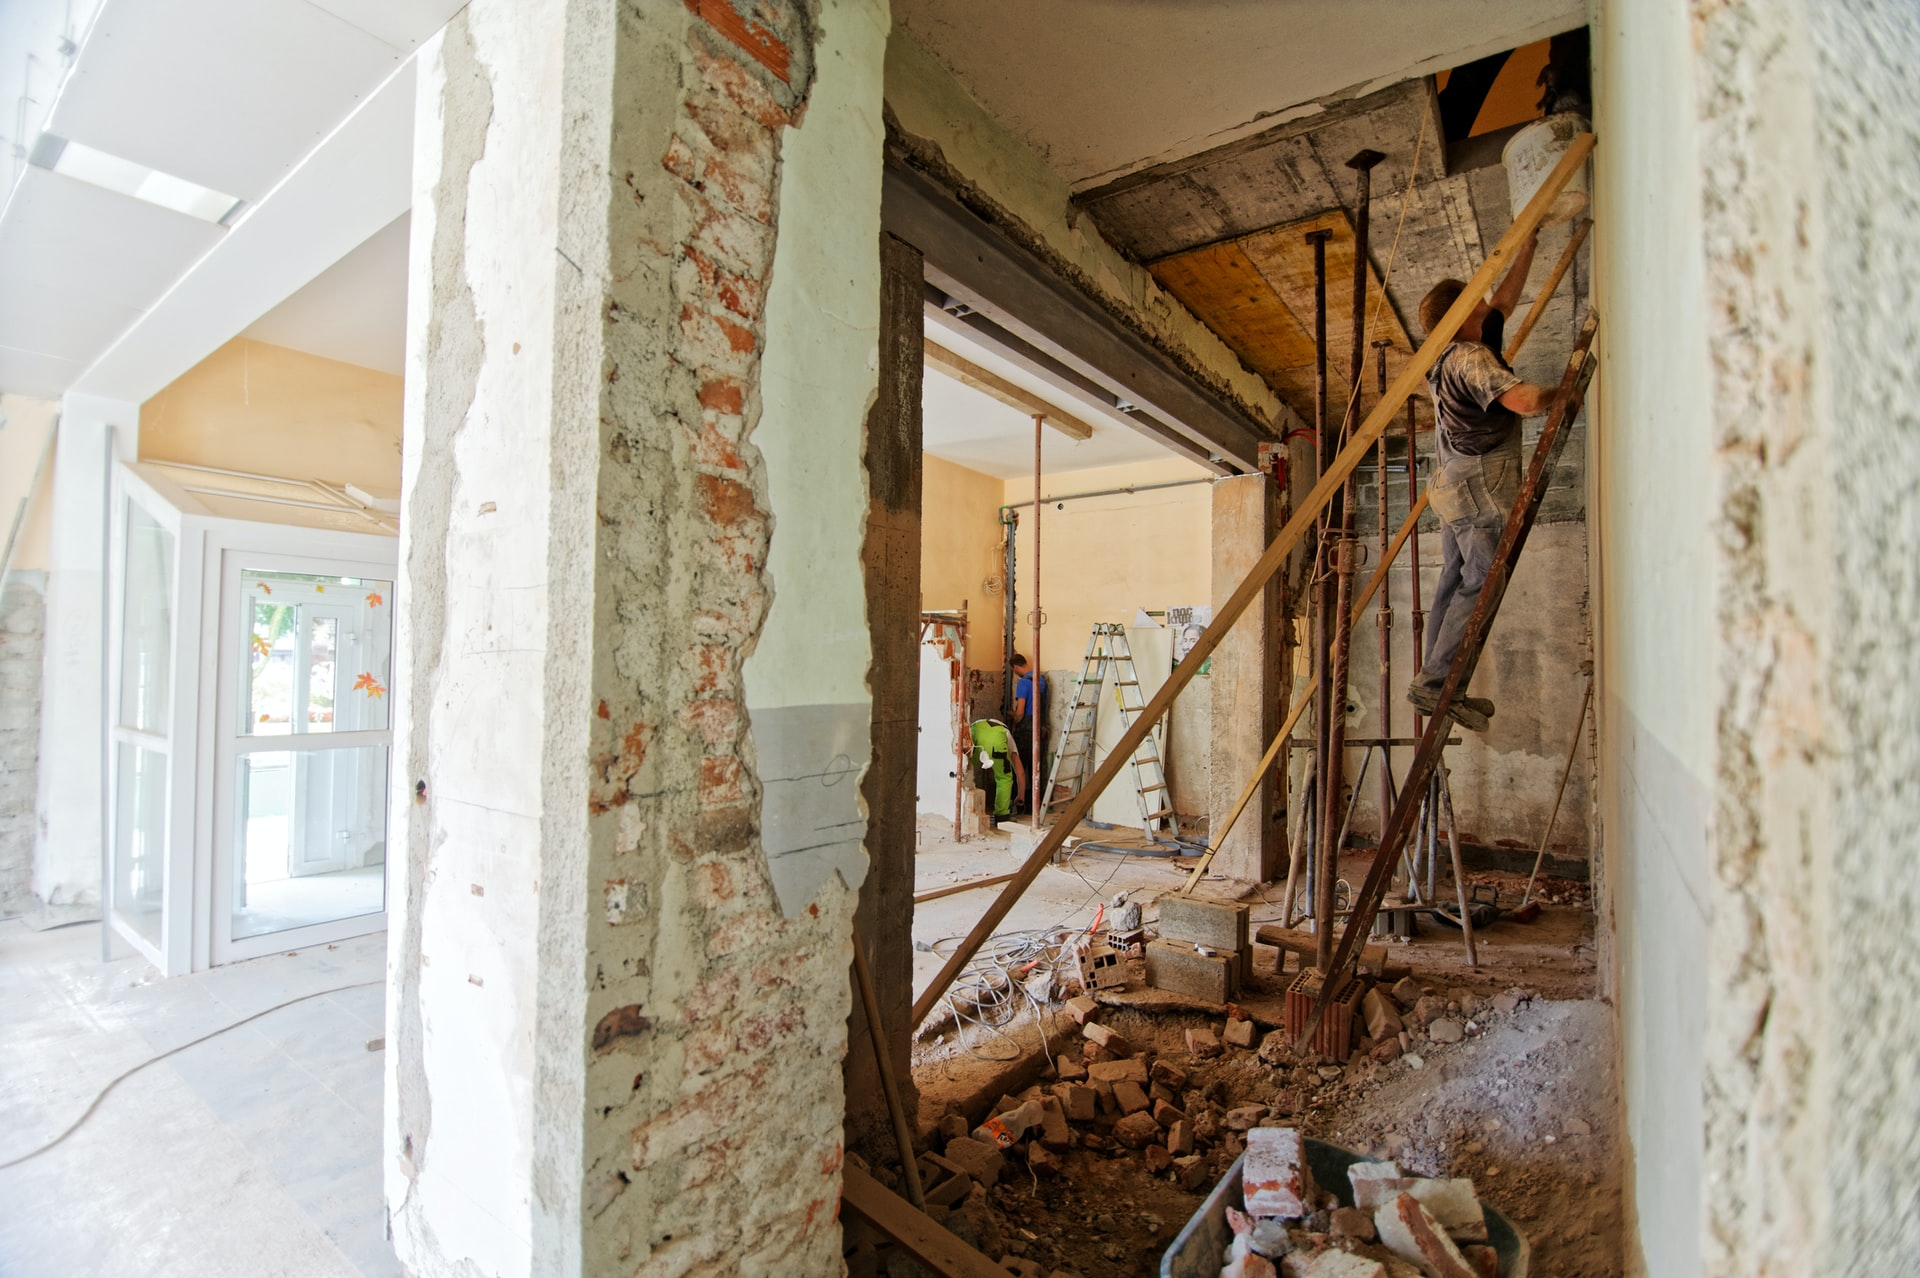 Repairing the foundation problems found in Florida